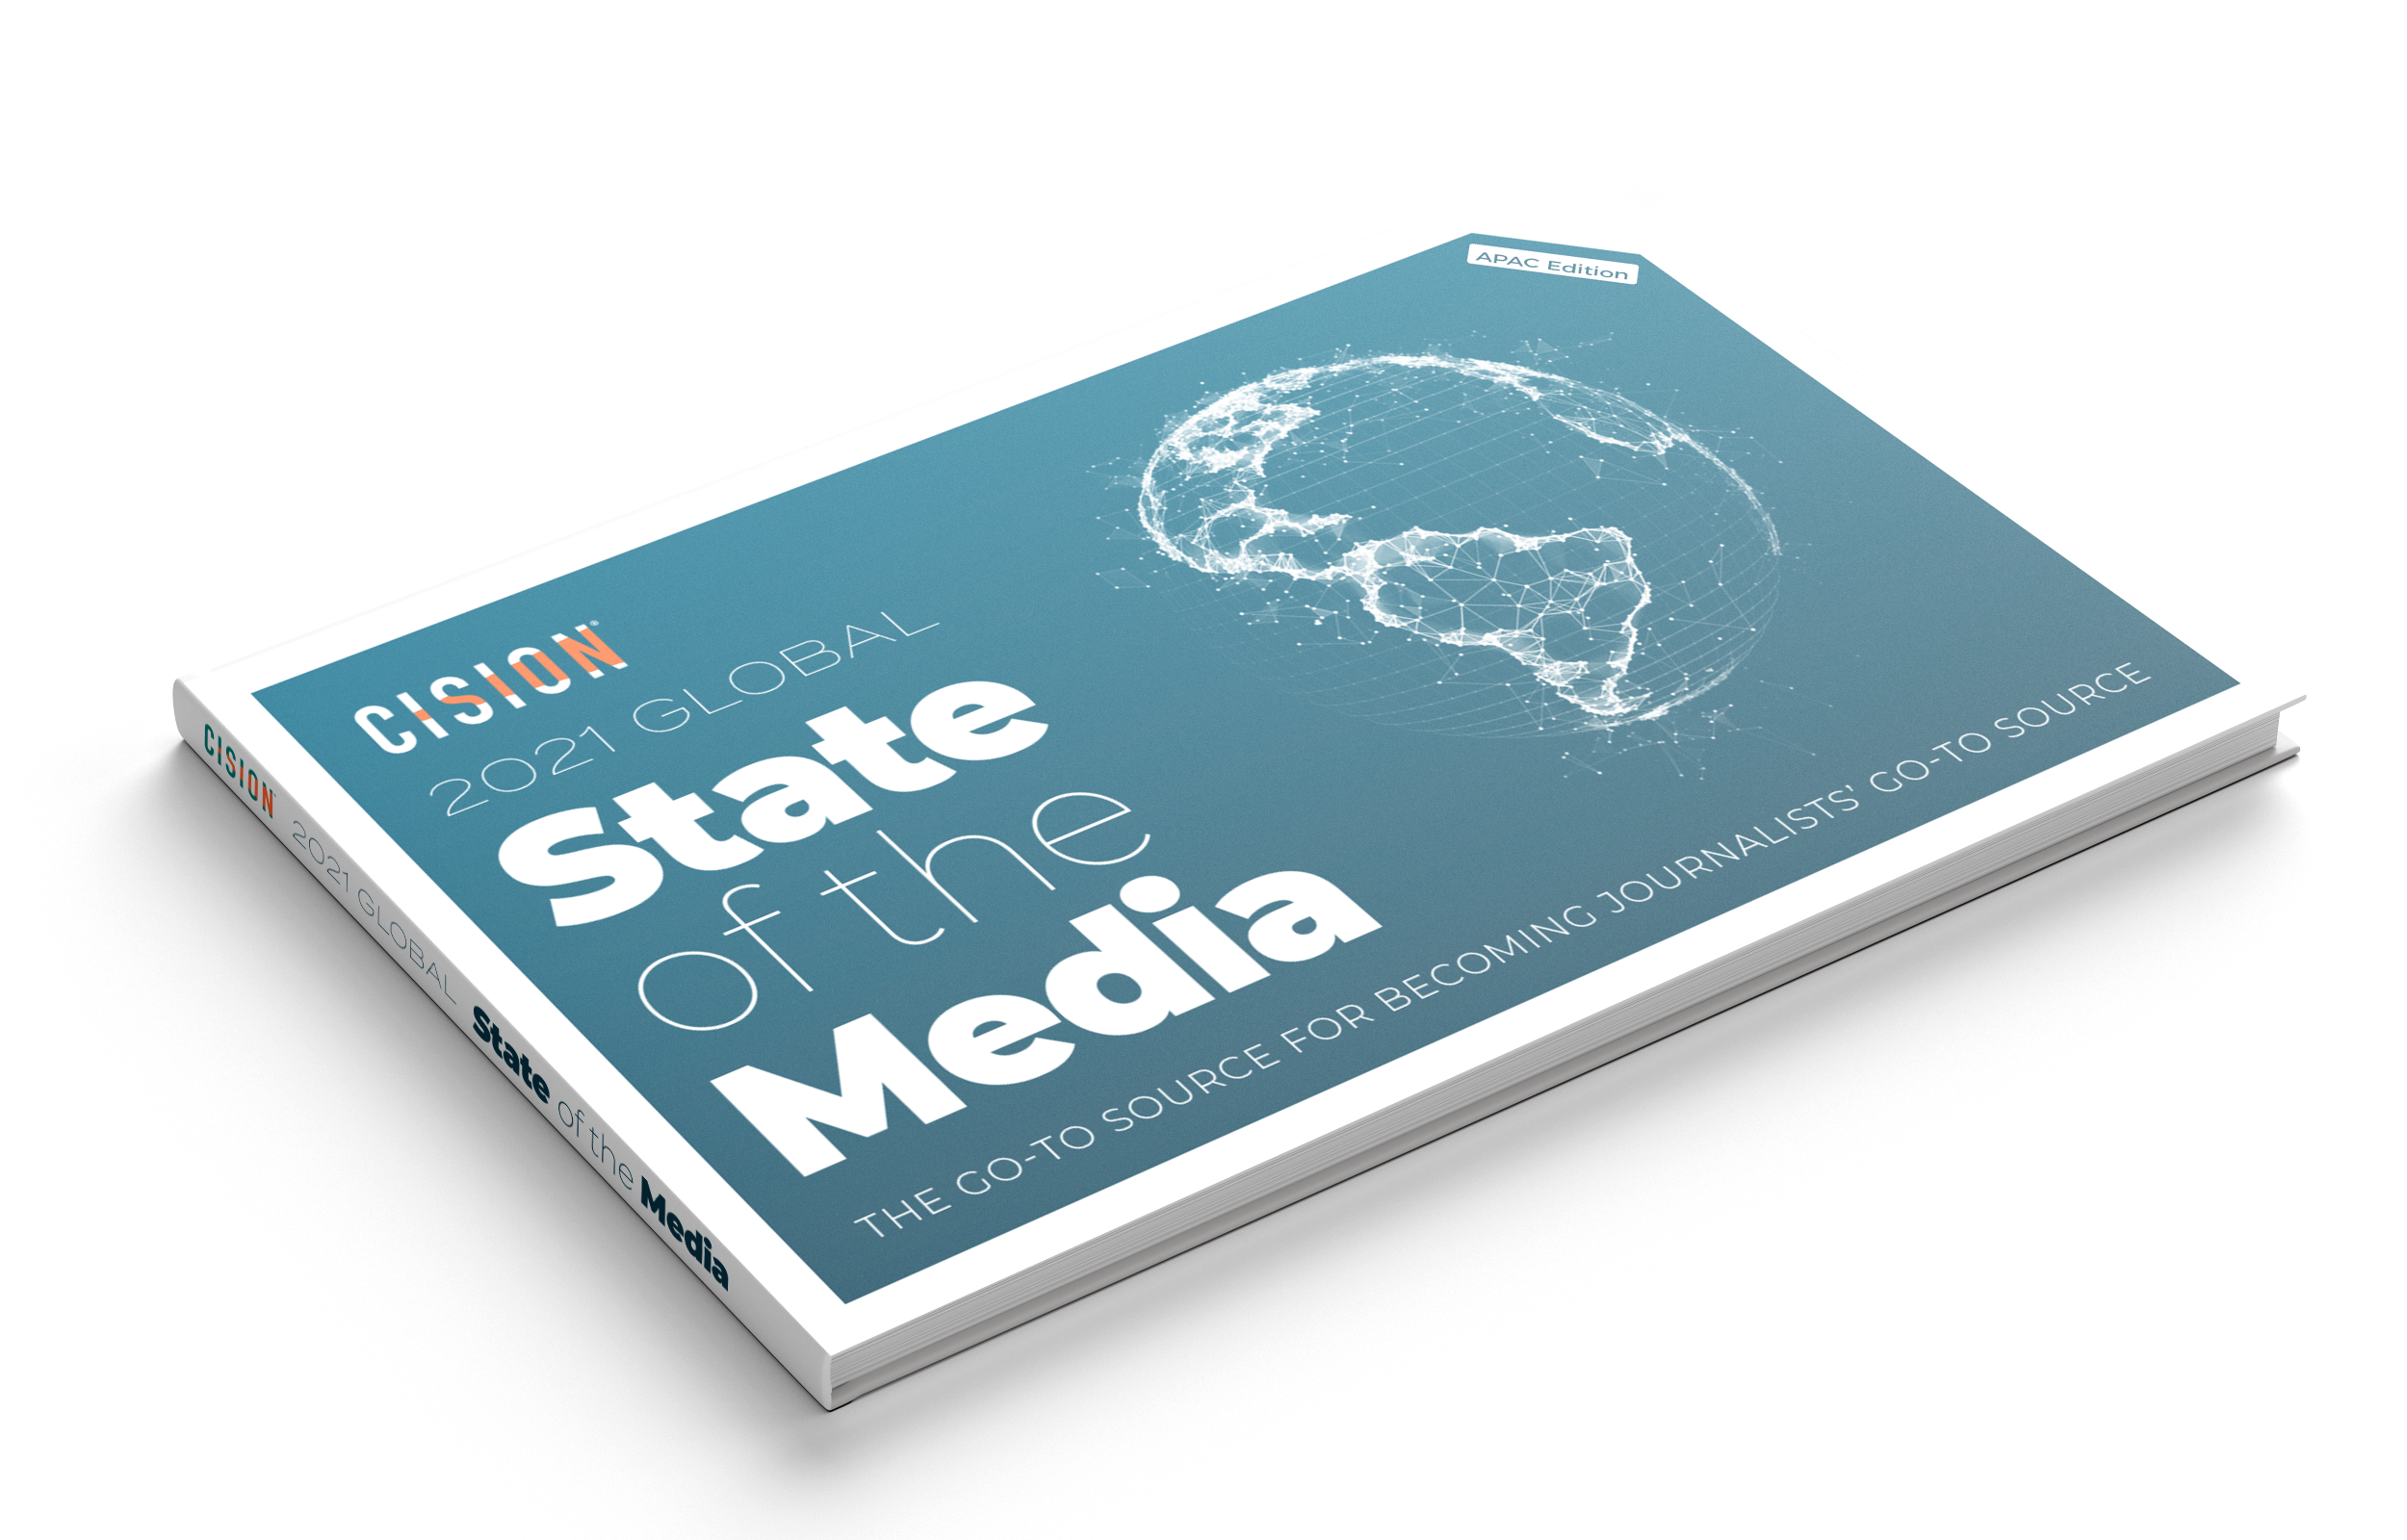 Cision's 2021 Global State of the Media Report (APAC Edition)